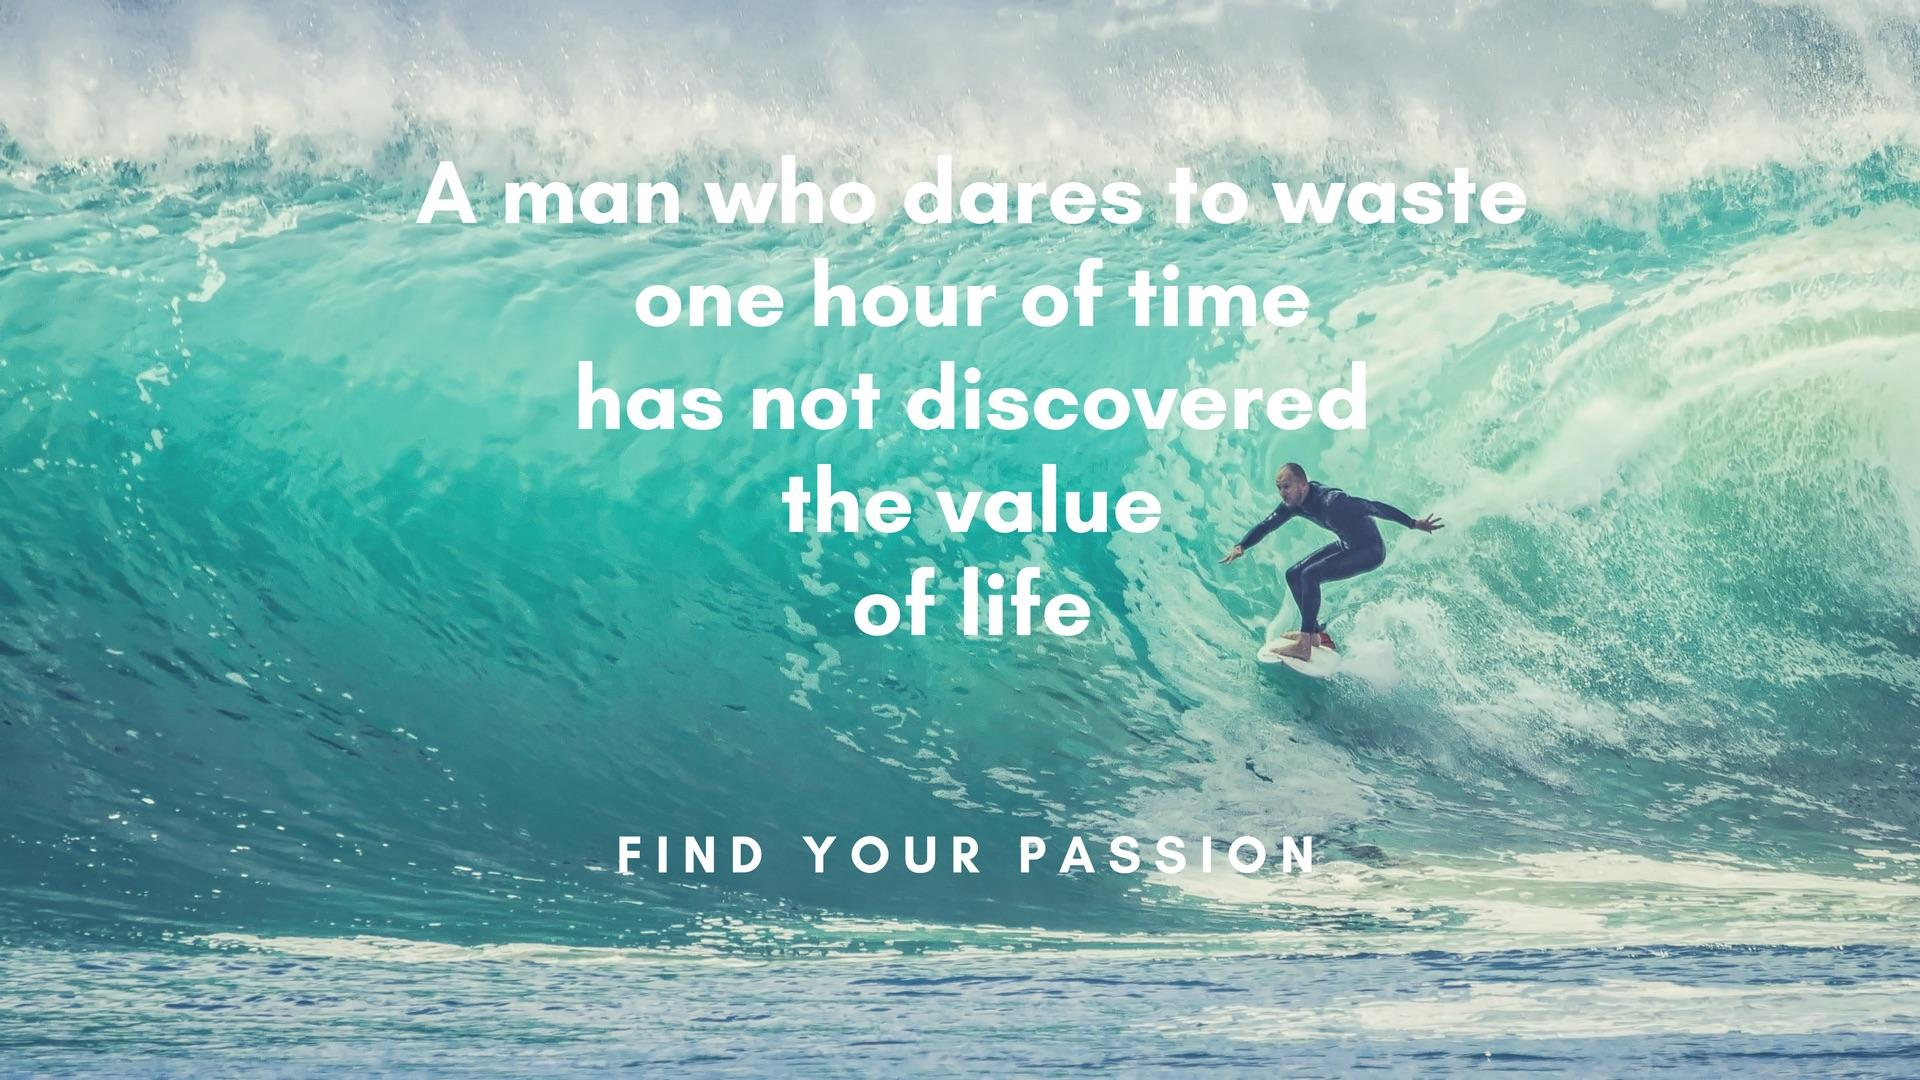 [Image] A man who dares to waste one hour of time has not discovered the value of life